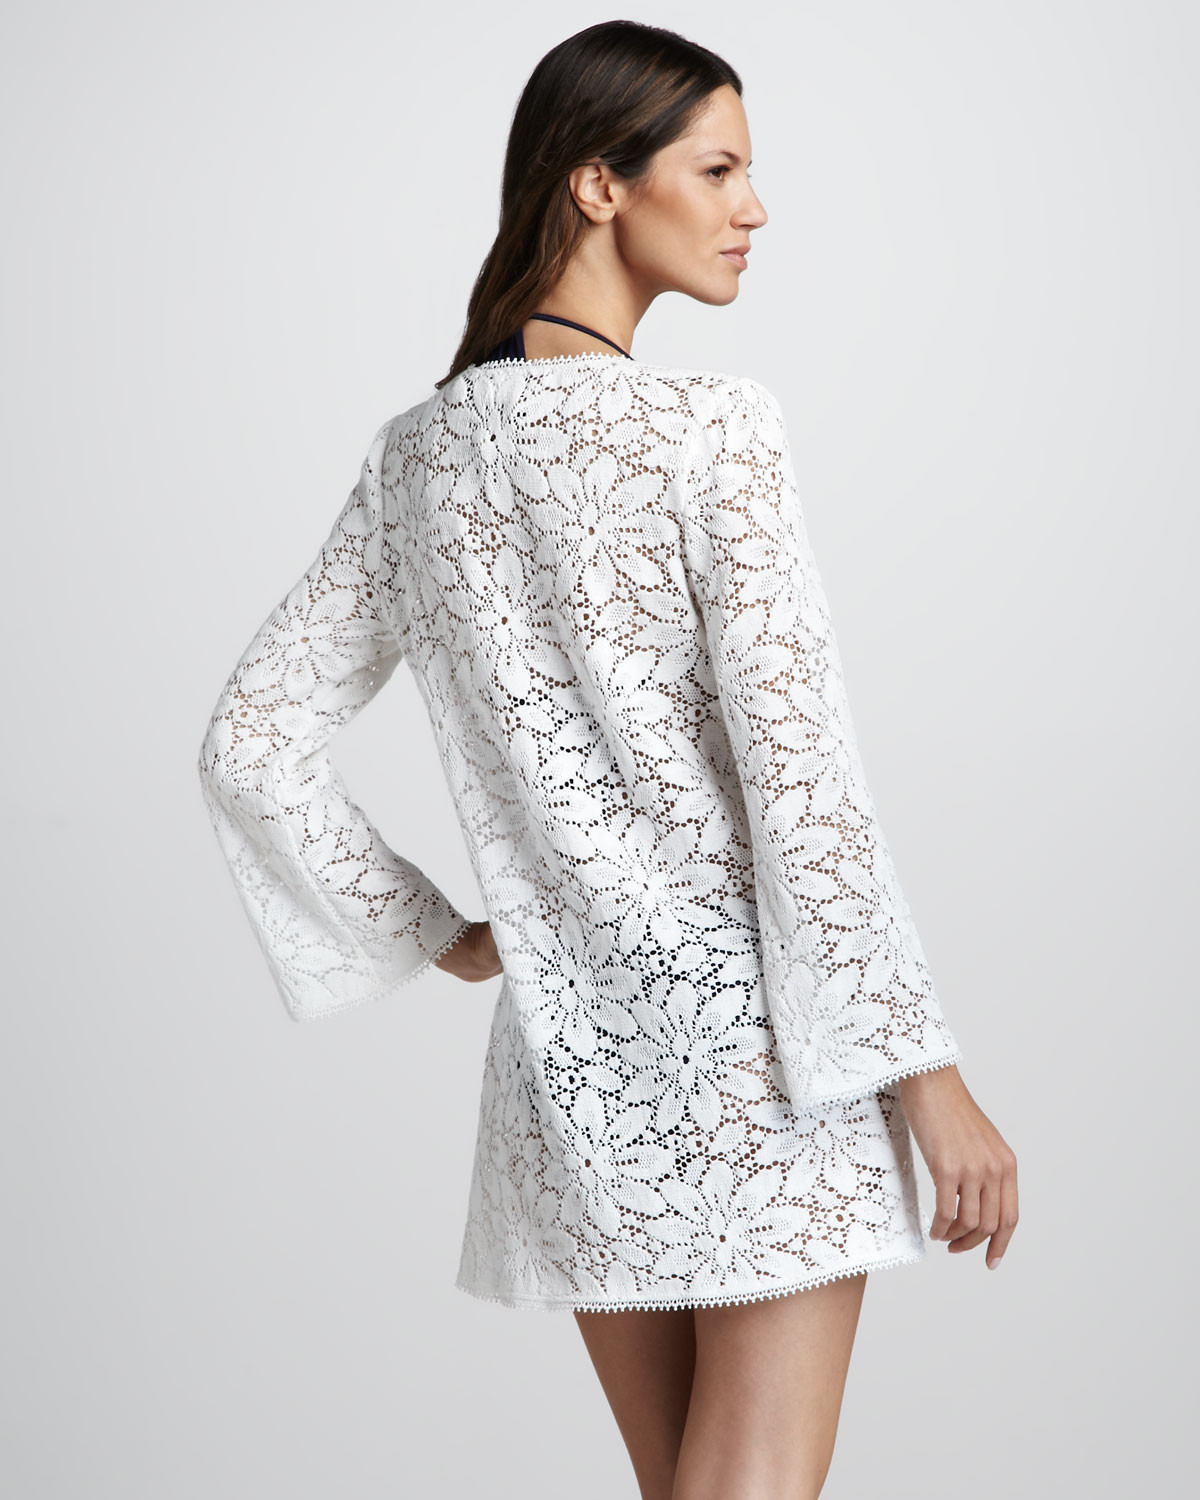 White Crochet Coverup Unique Milly Chrysanthemum Crochet Tunic Coverup In White Of Unique 50 Models White Crochet Coverup